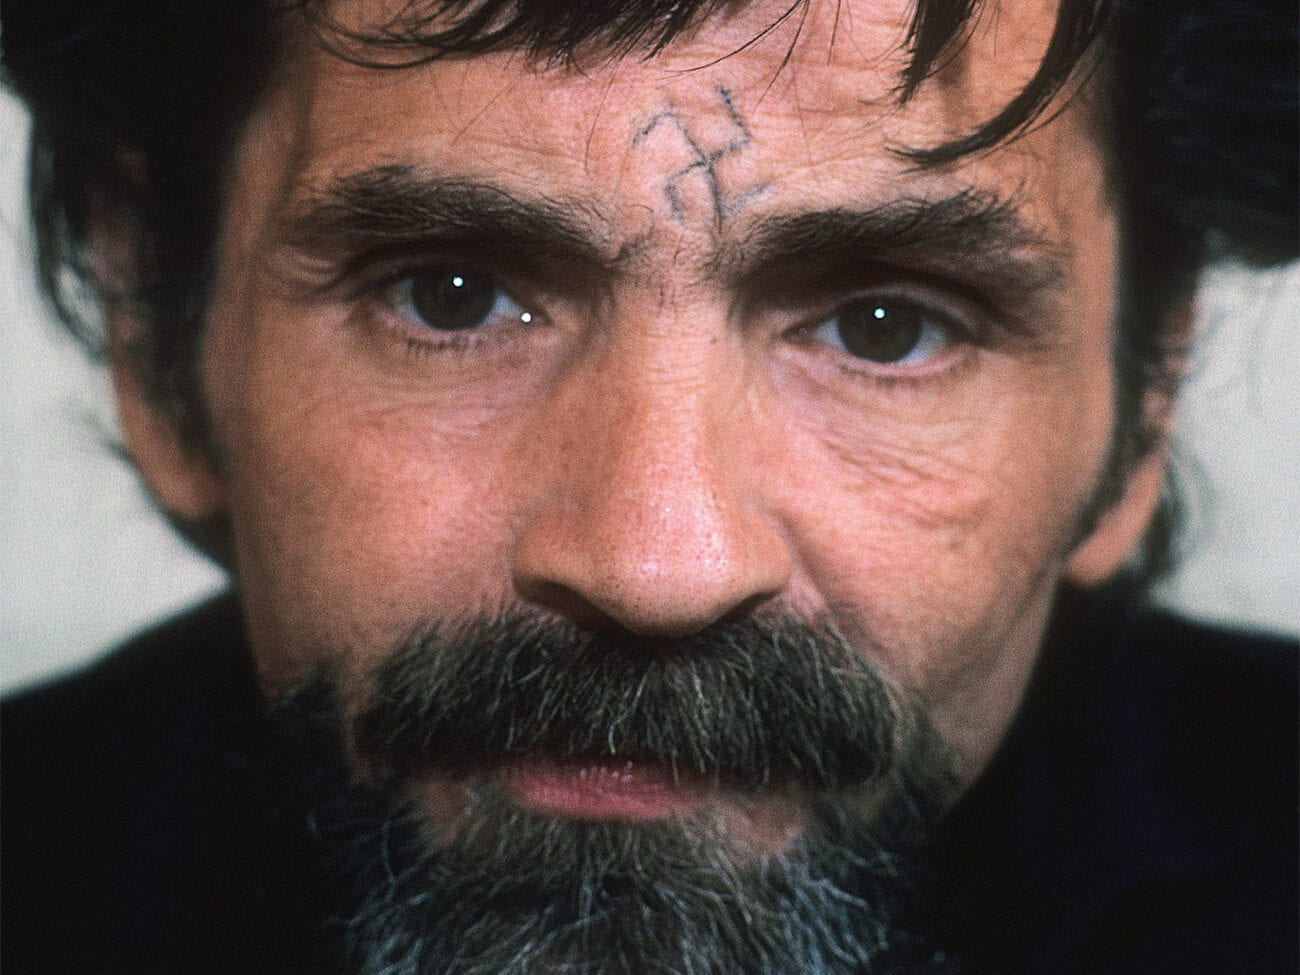 Infamous serial killer and cult leader Charles Manson fathered a surprising amount of children for someone so vile. See where his children are today.